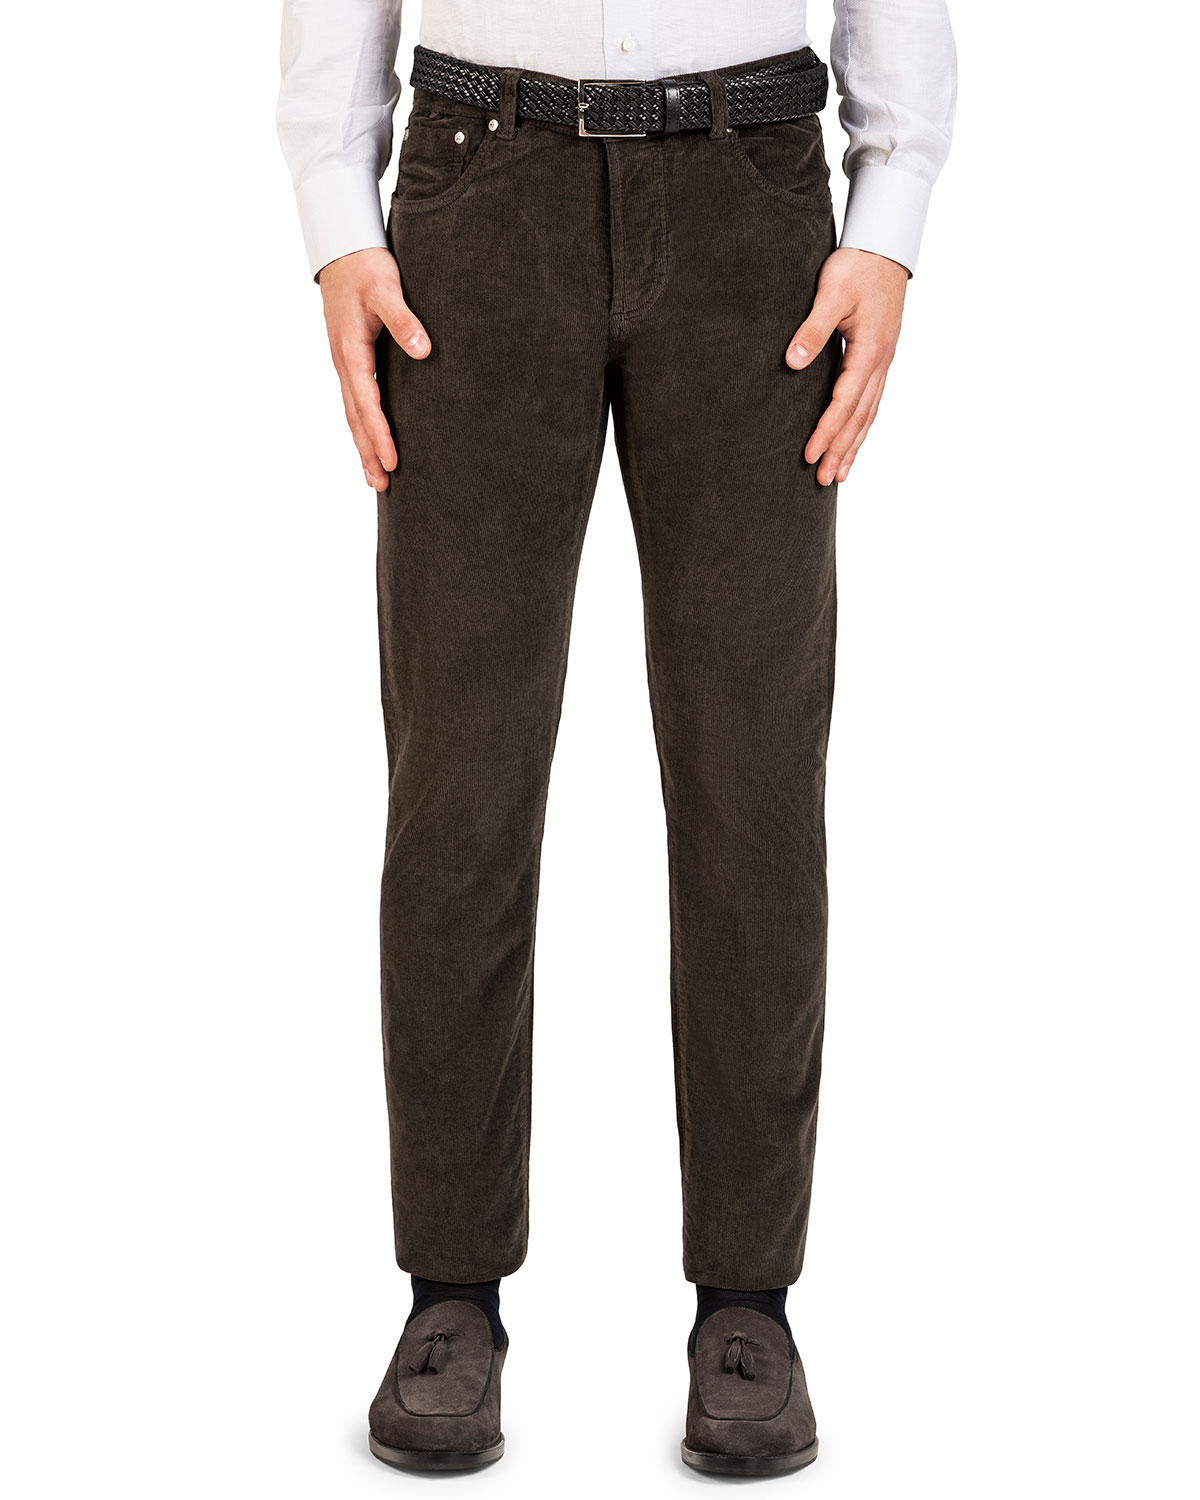 Isaia Pants MEN'S STRAIGHT-LEG 5-POCKET CORDUROY PANTS